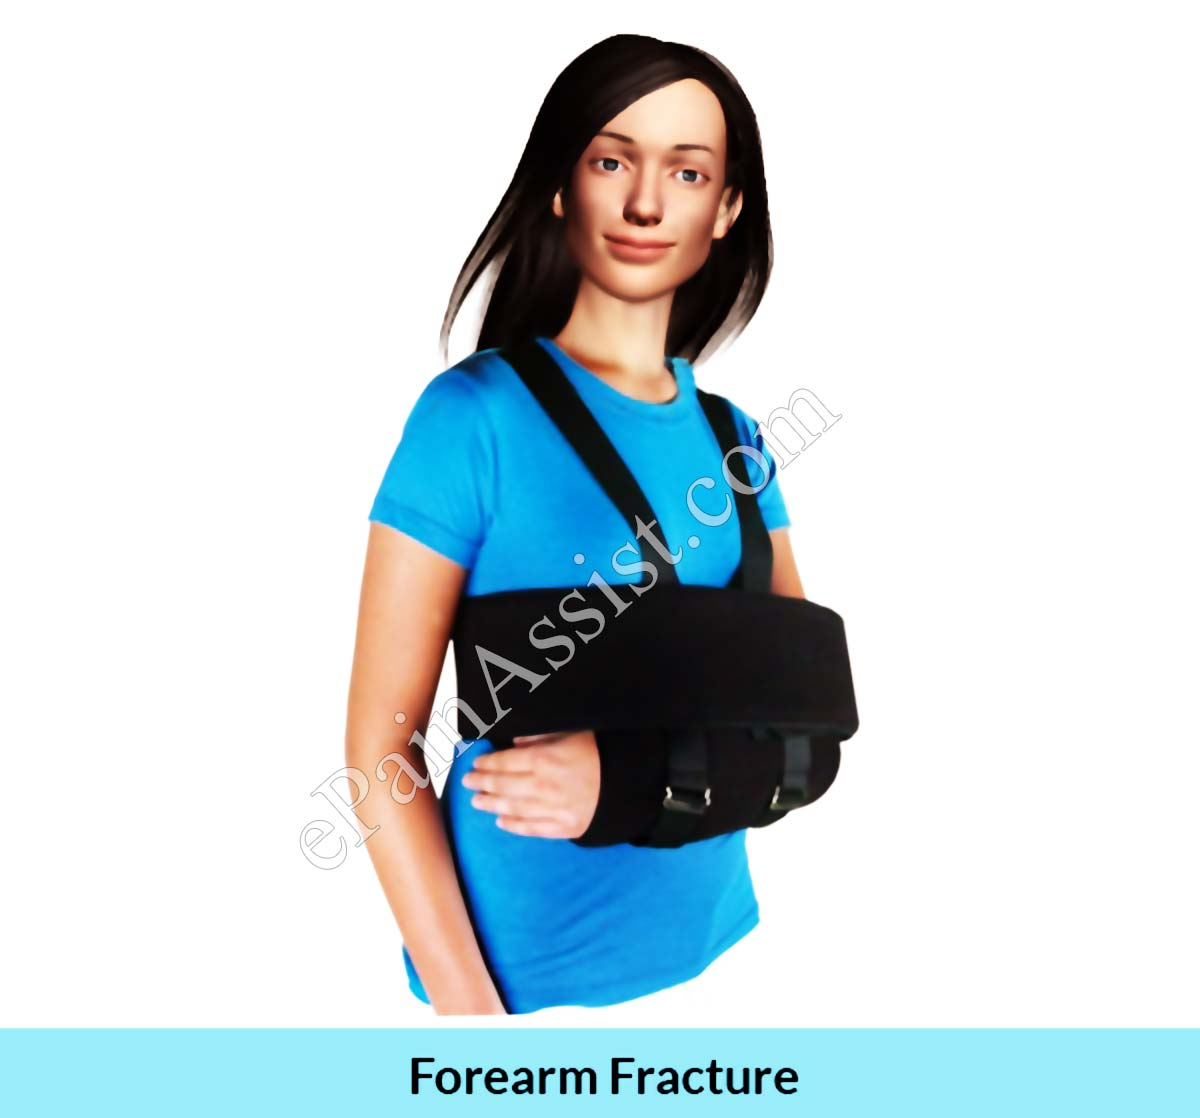 In case of a fracture,The arm should be kept in a sling to immobilize it.